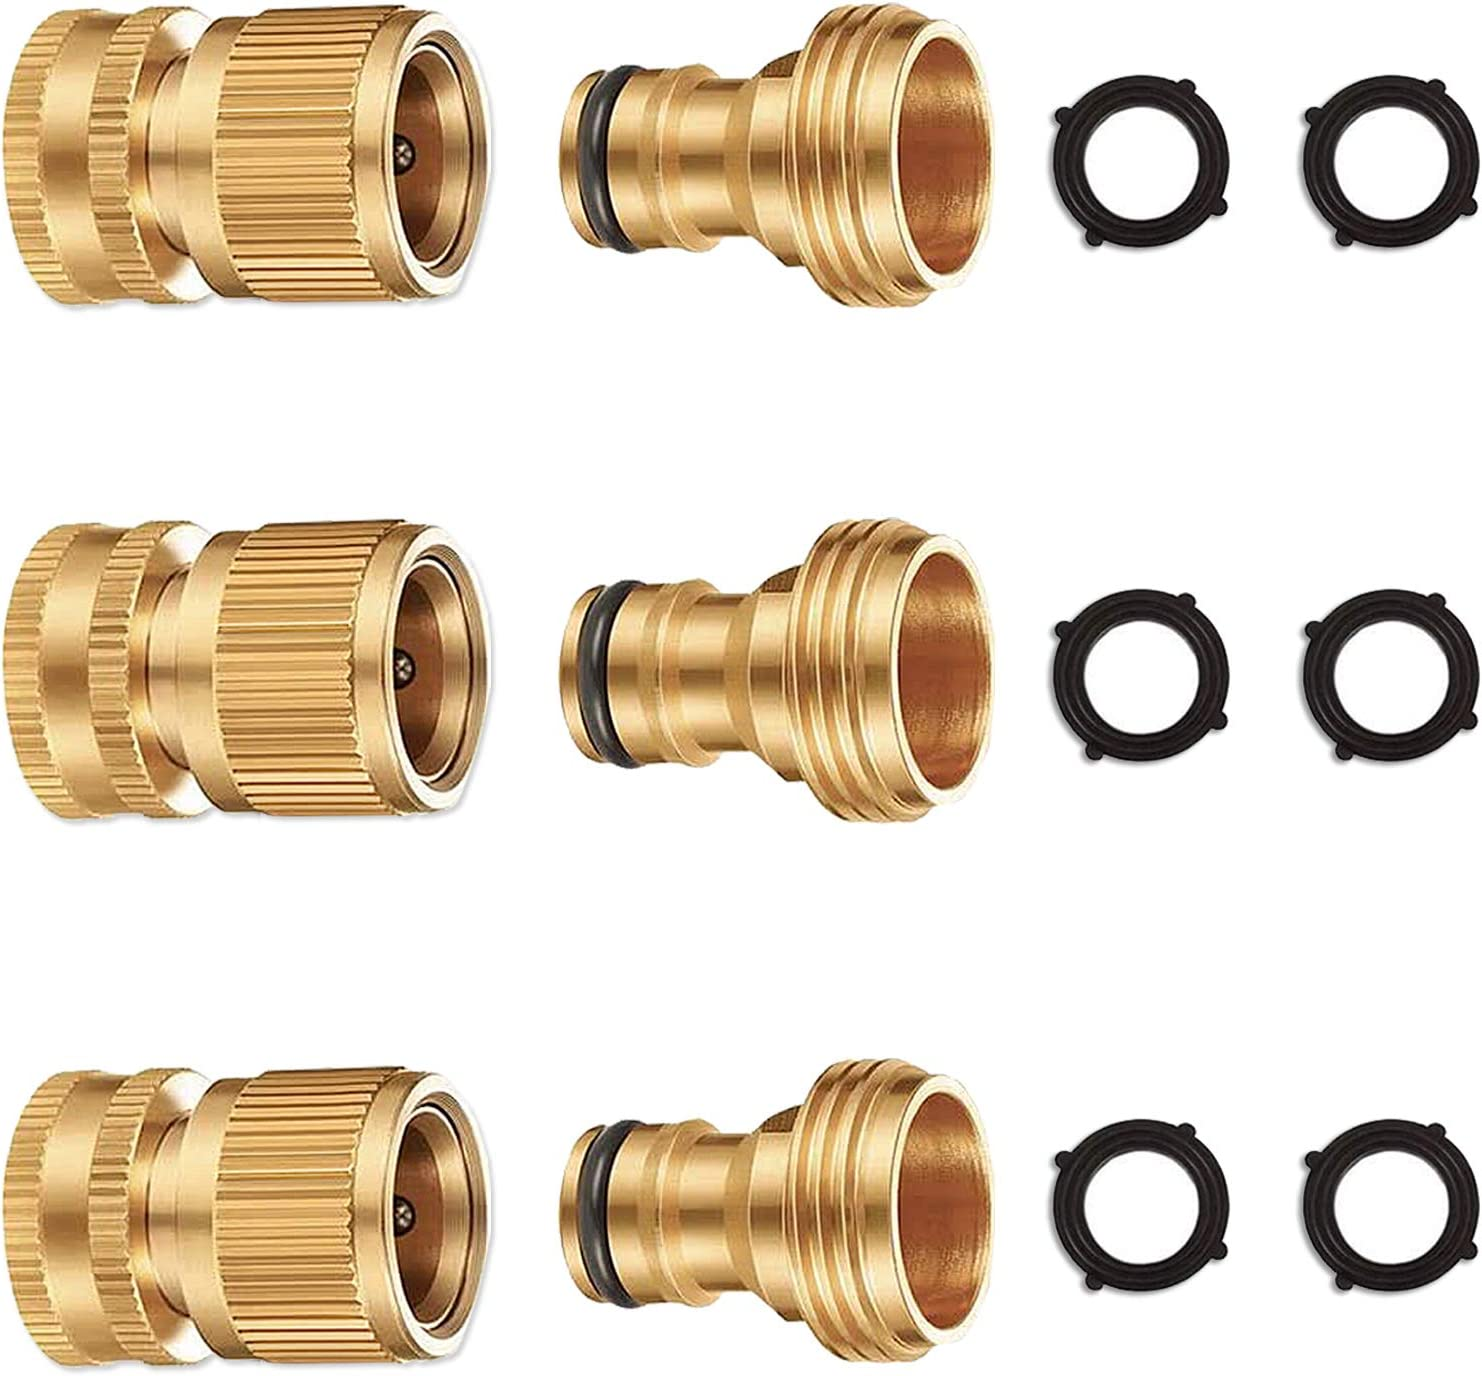 "YYinno Garden Hose Quick Connector,Hose Quick Connect Fittings Heavy Duty Brass Water Hose Connectors for Standard 3/4"" Watering Devices (3)"